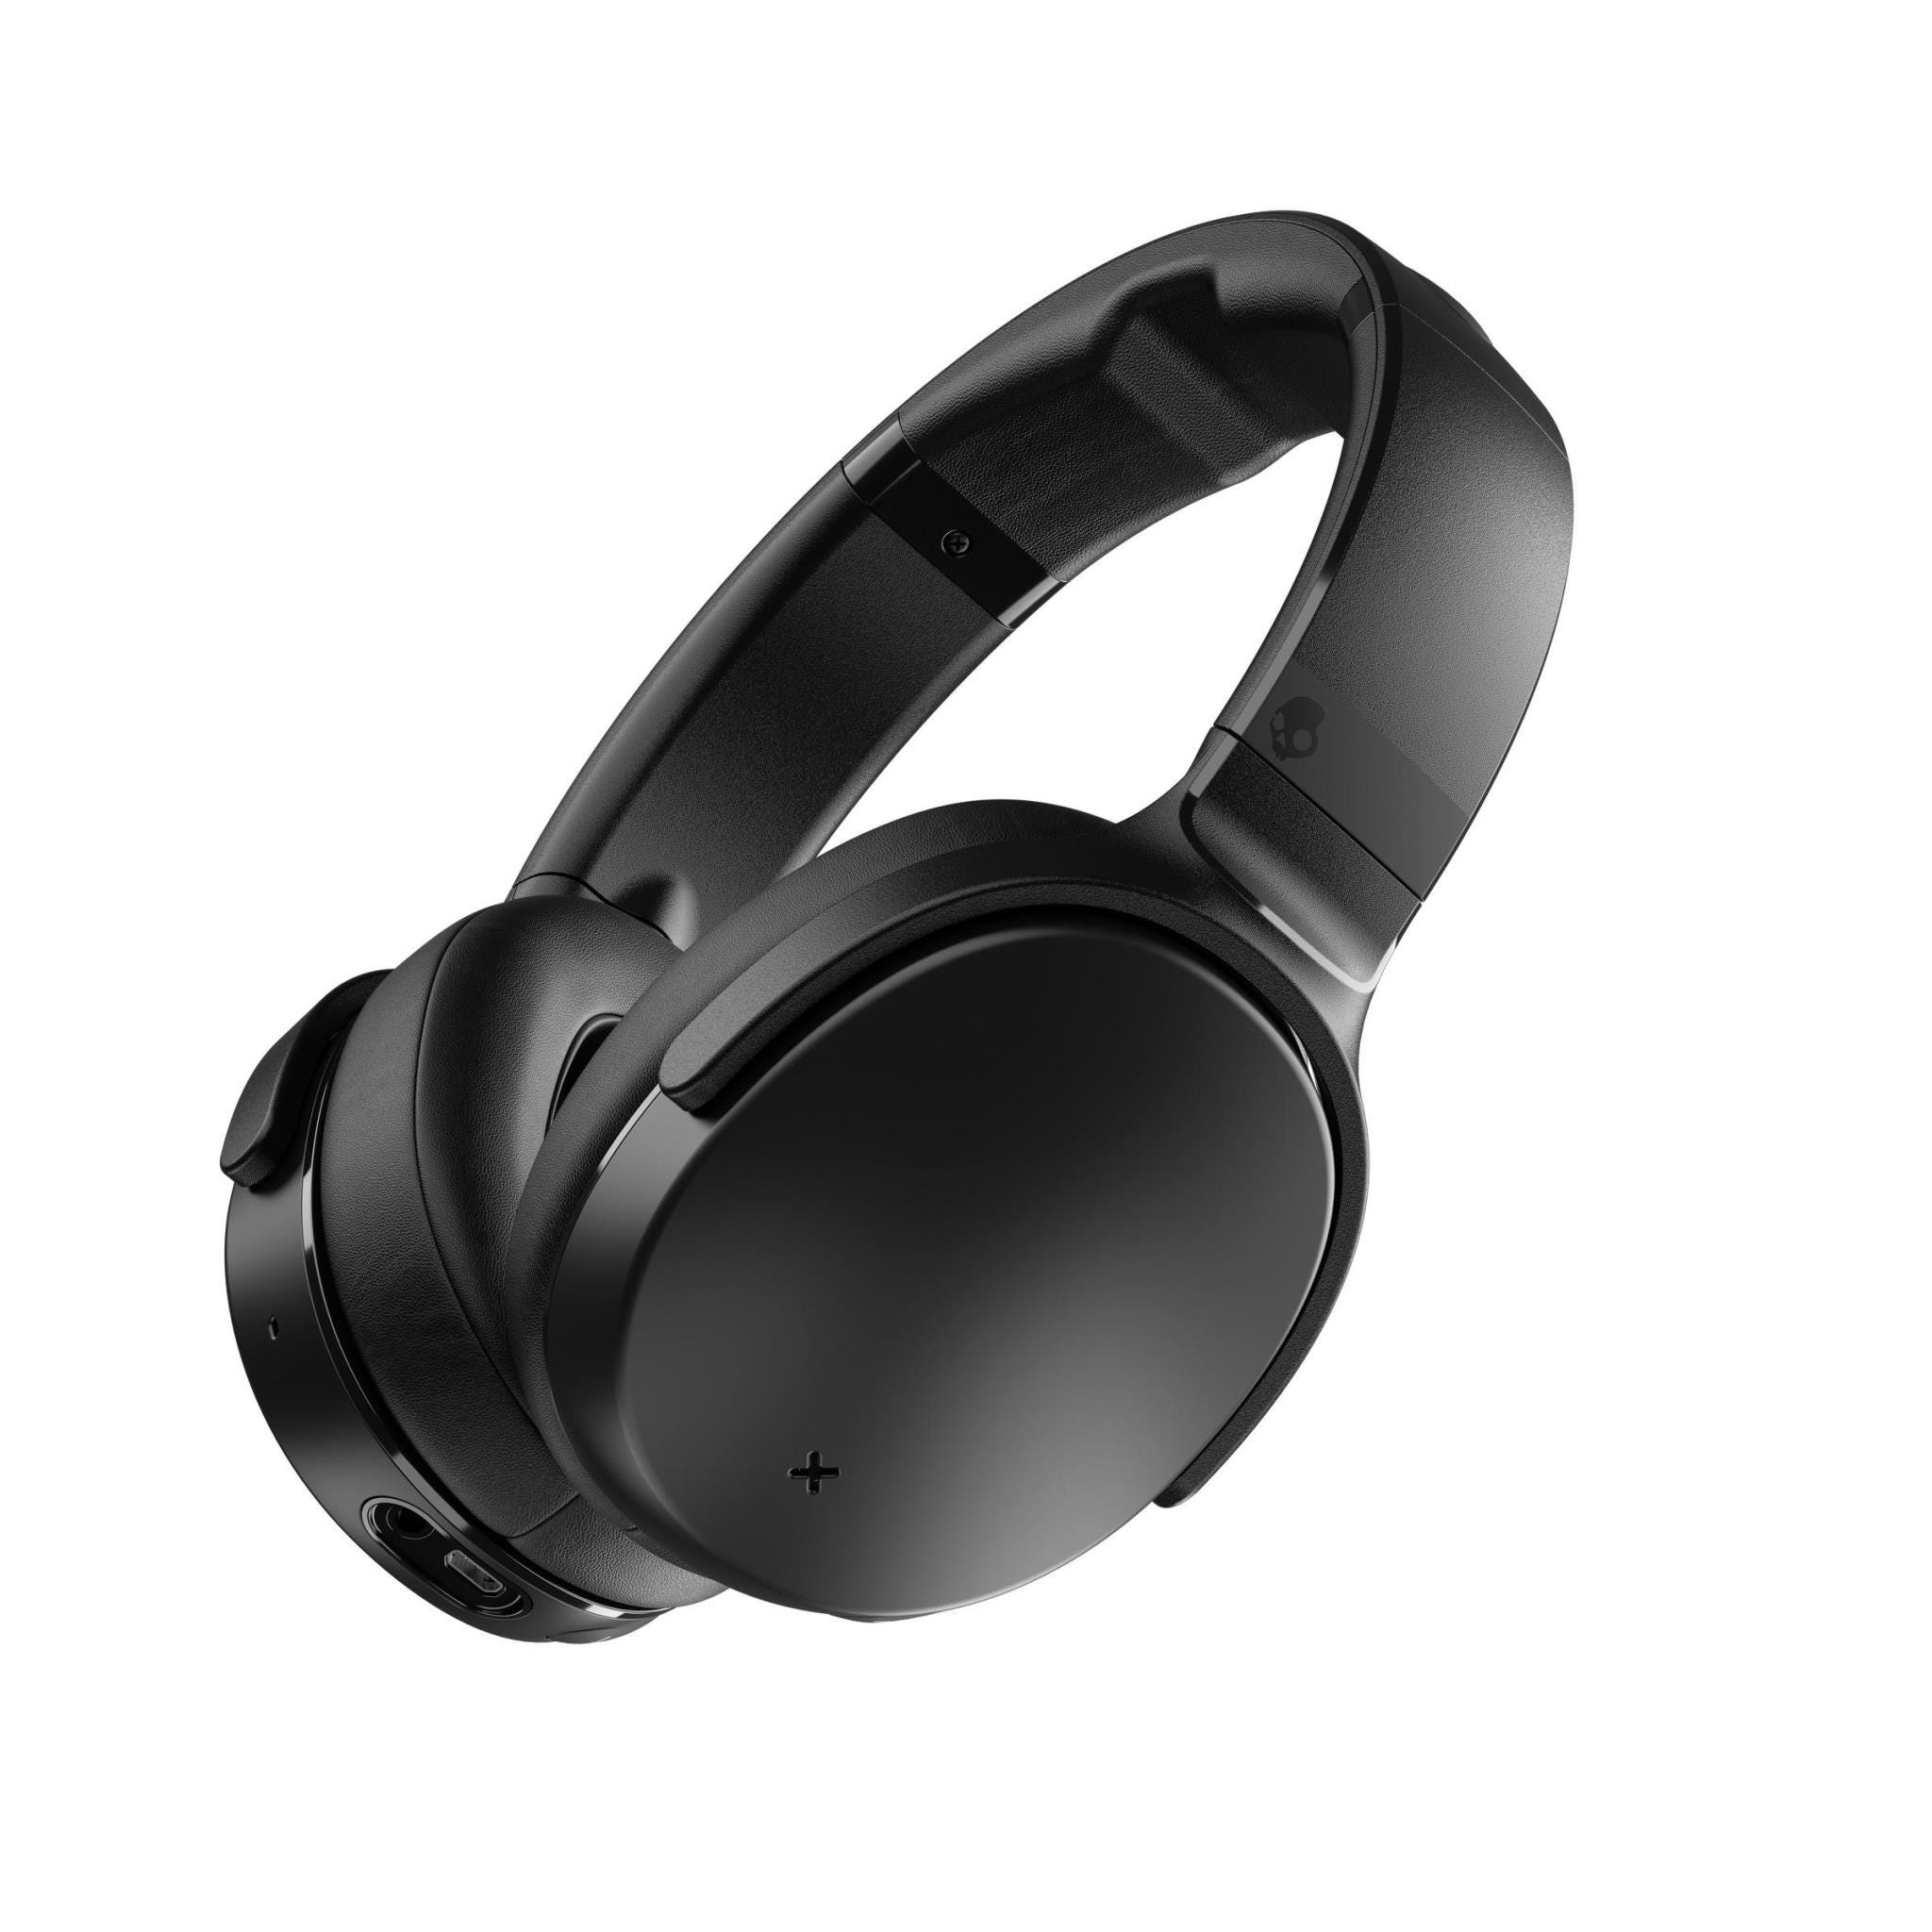 SkullCandy Venue Wireless Bluetooth Noise-Cancelling Over-Ear Headphones - Black